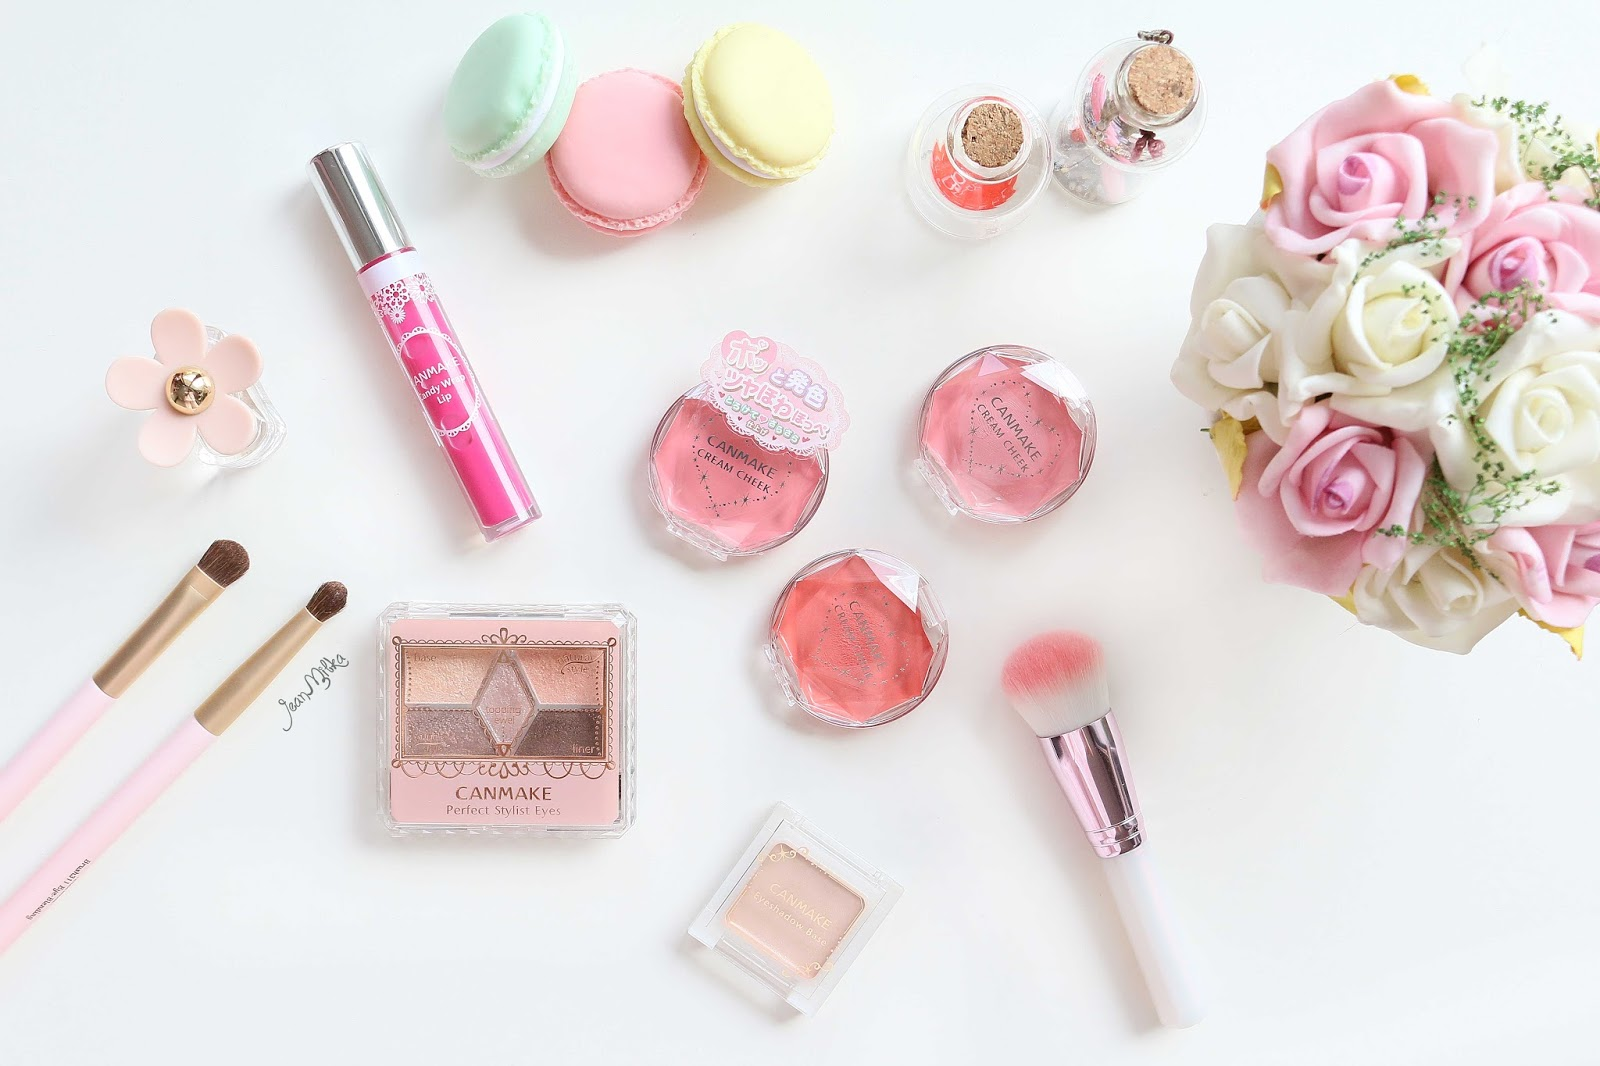 10 Must-Have Canmake Products!